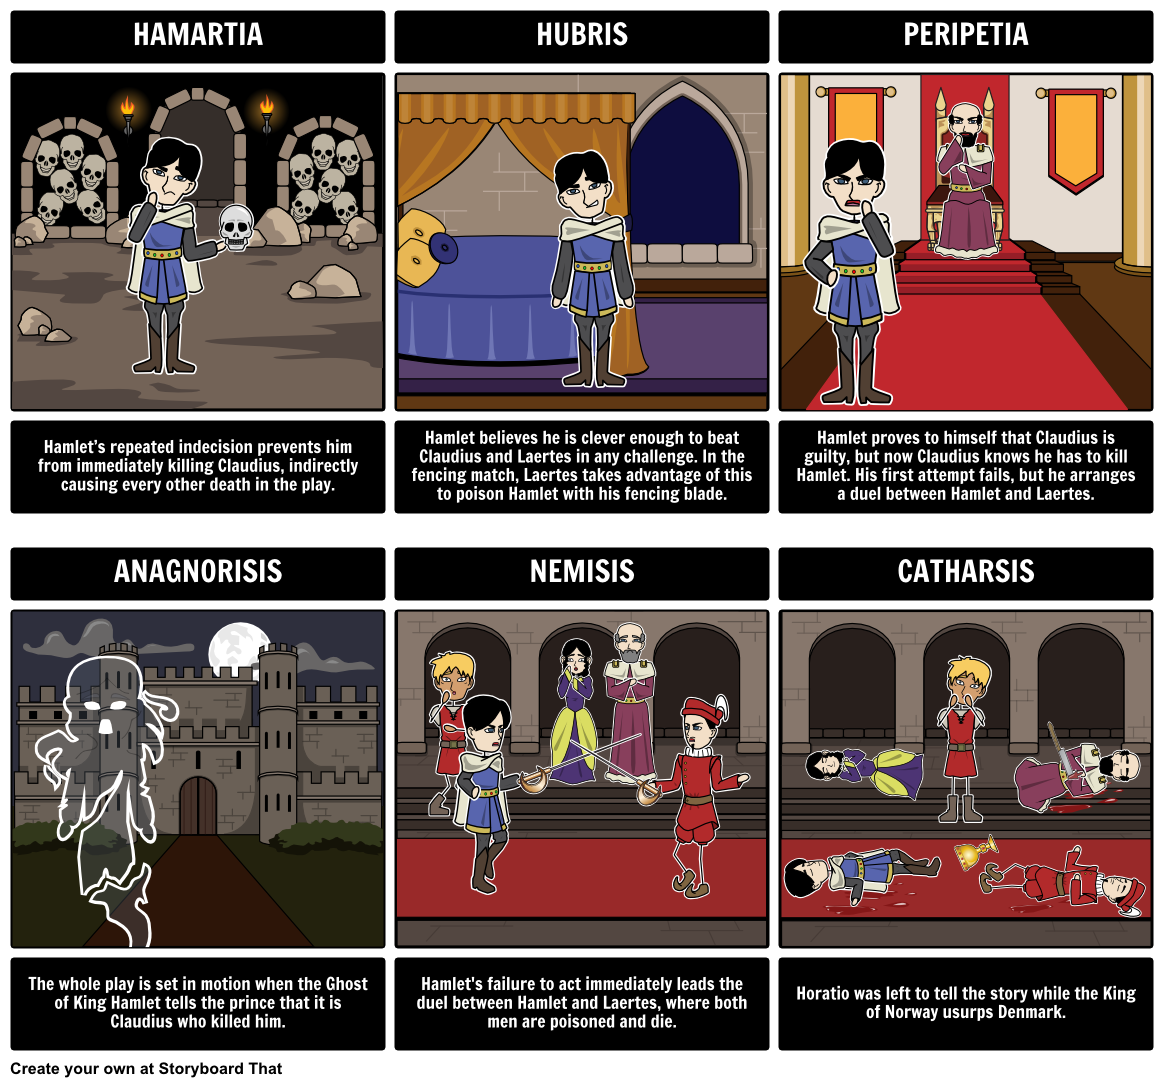 hamlet tragic hero the tragic hero storyboard for the tragedy hamlet tragic hero the tragic hero storyboard for the tragedy of hamlet is a